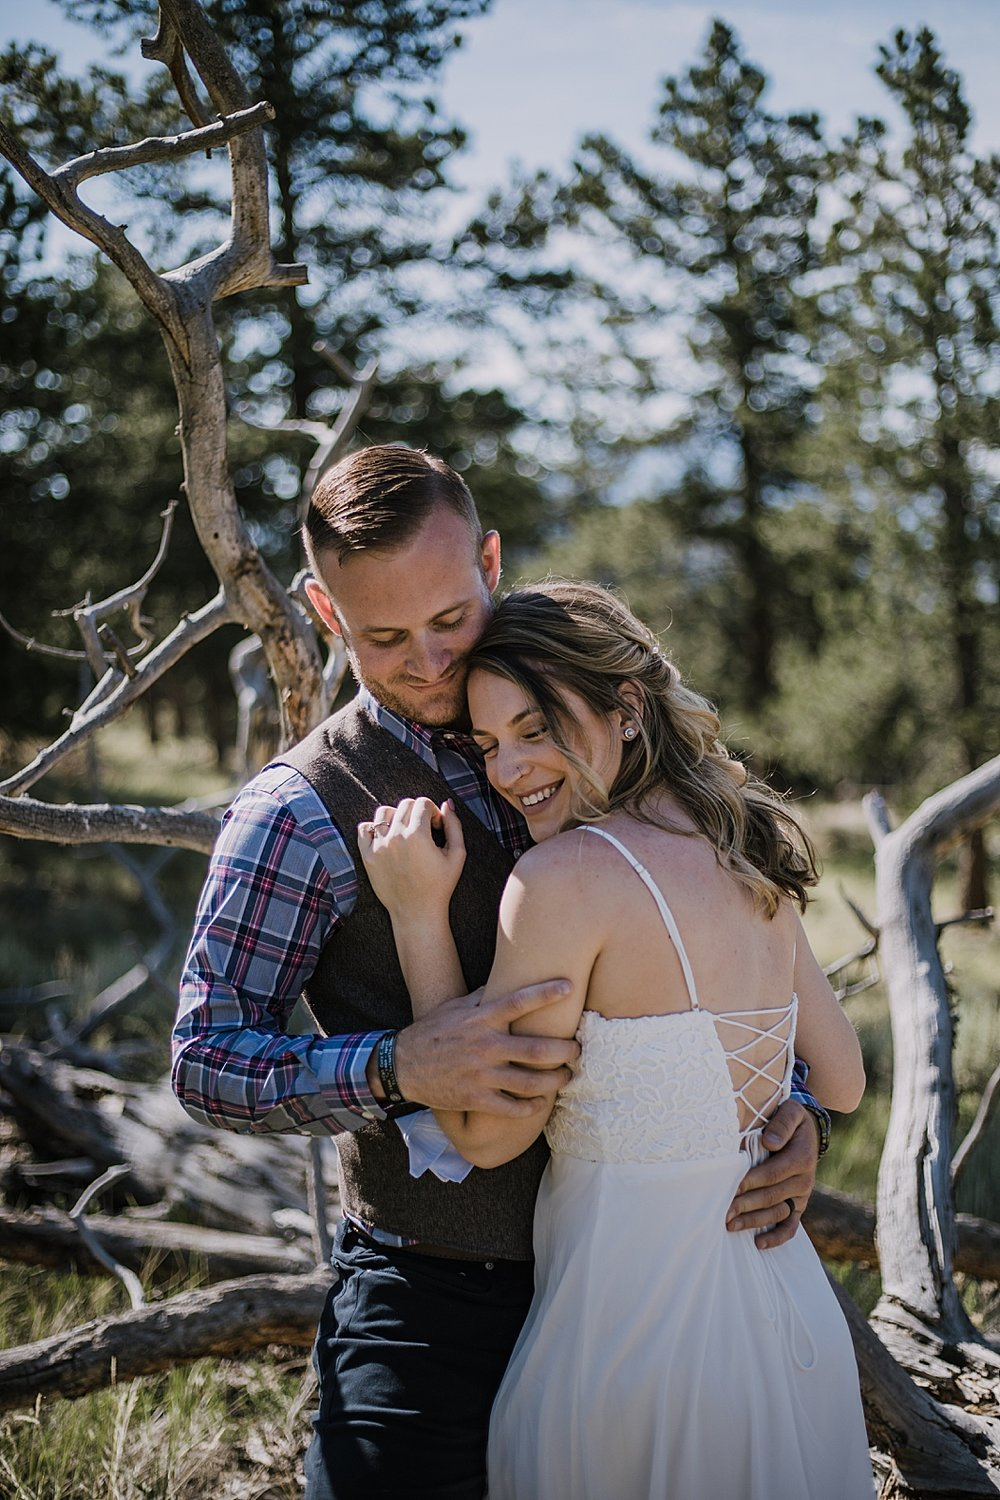 couple cuddling, RMNP elopement ceremony, rocky mountain national park elopement, 3M curves elopement, self solemnizing, self solemnization, long's peak, summer hiking elopement, estes park elopement